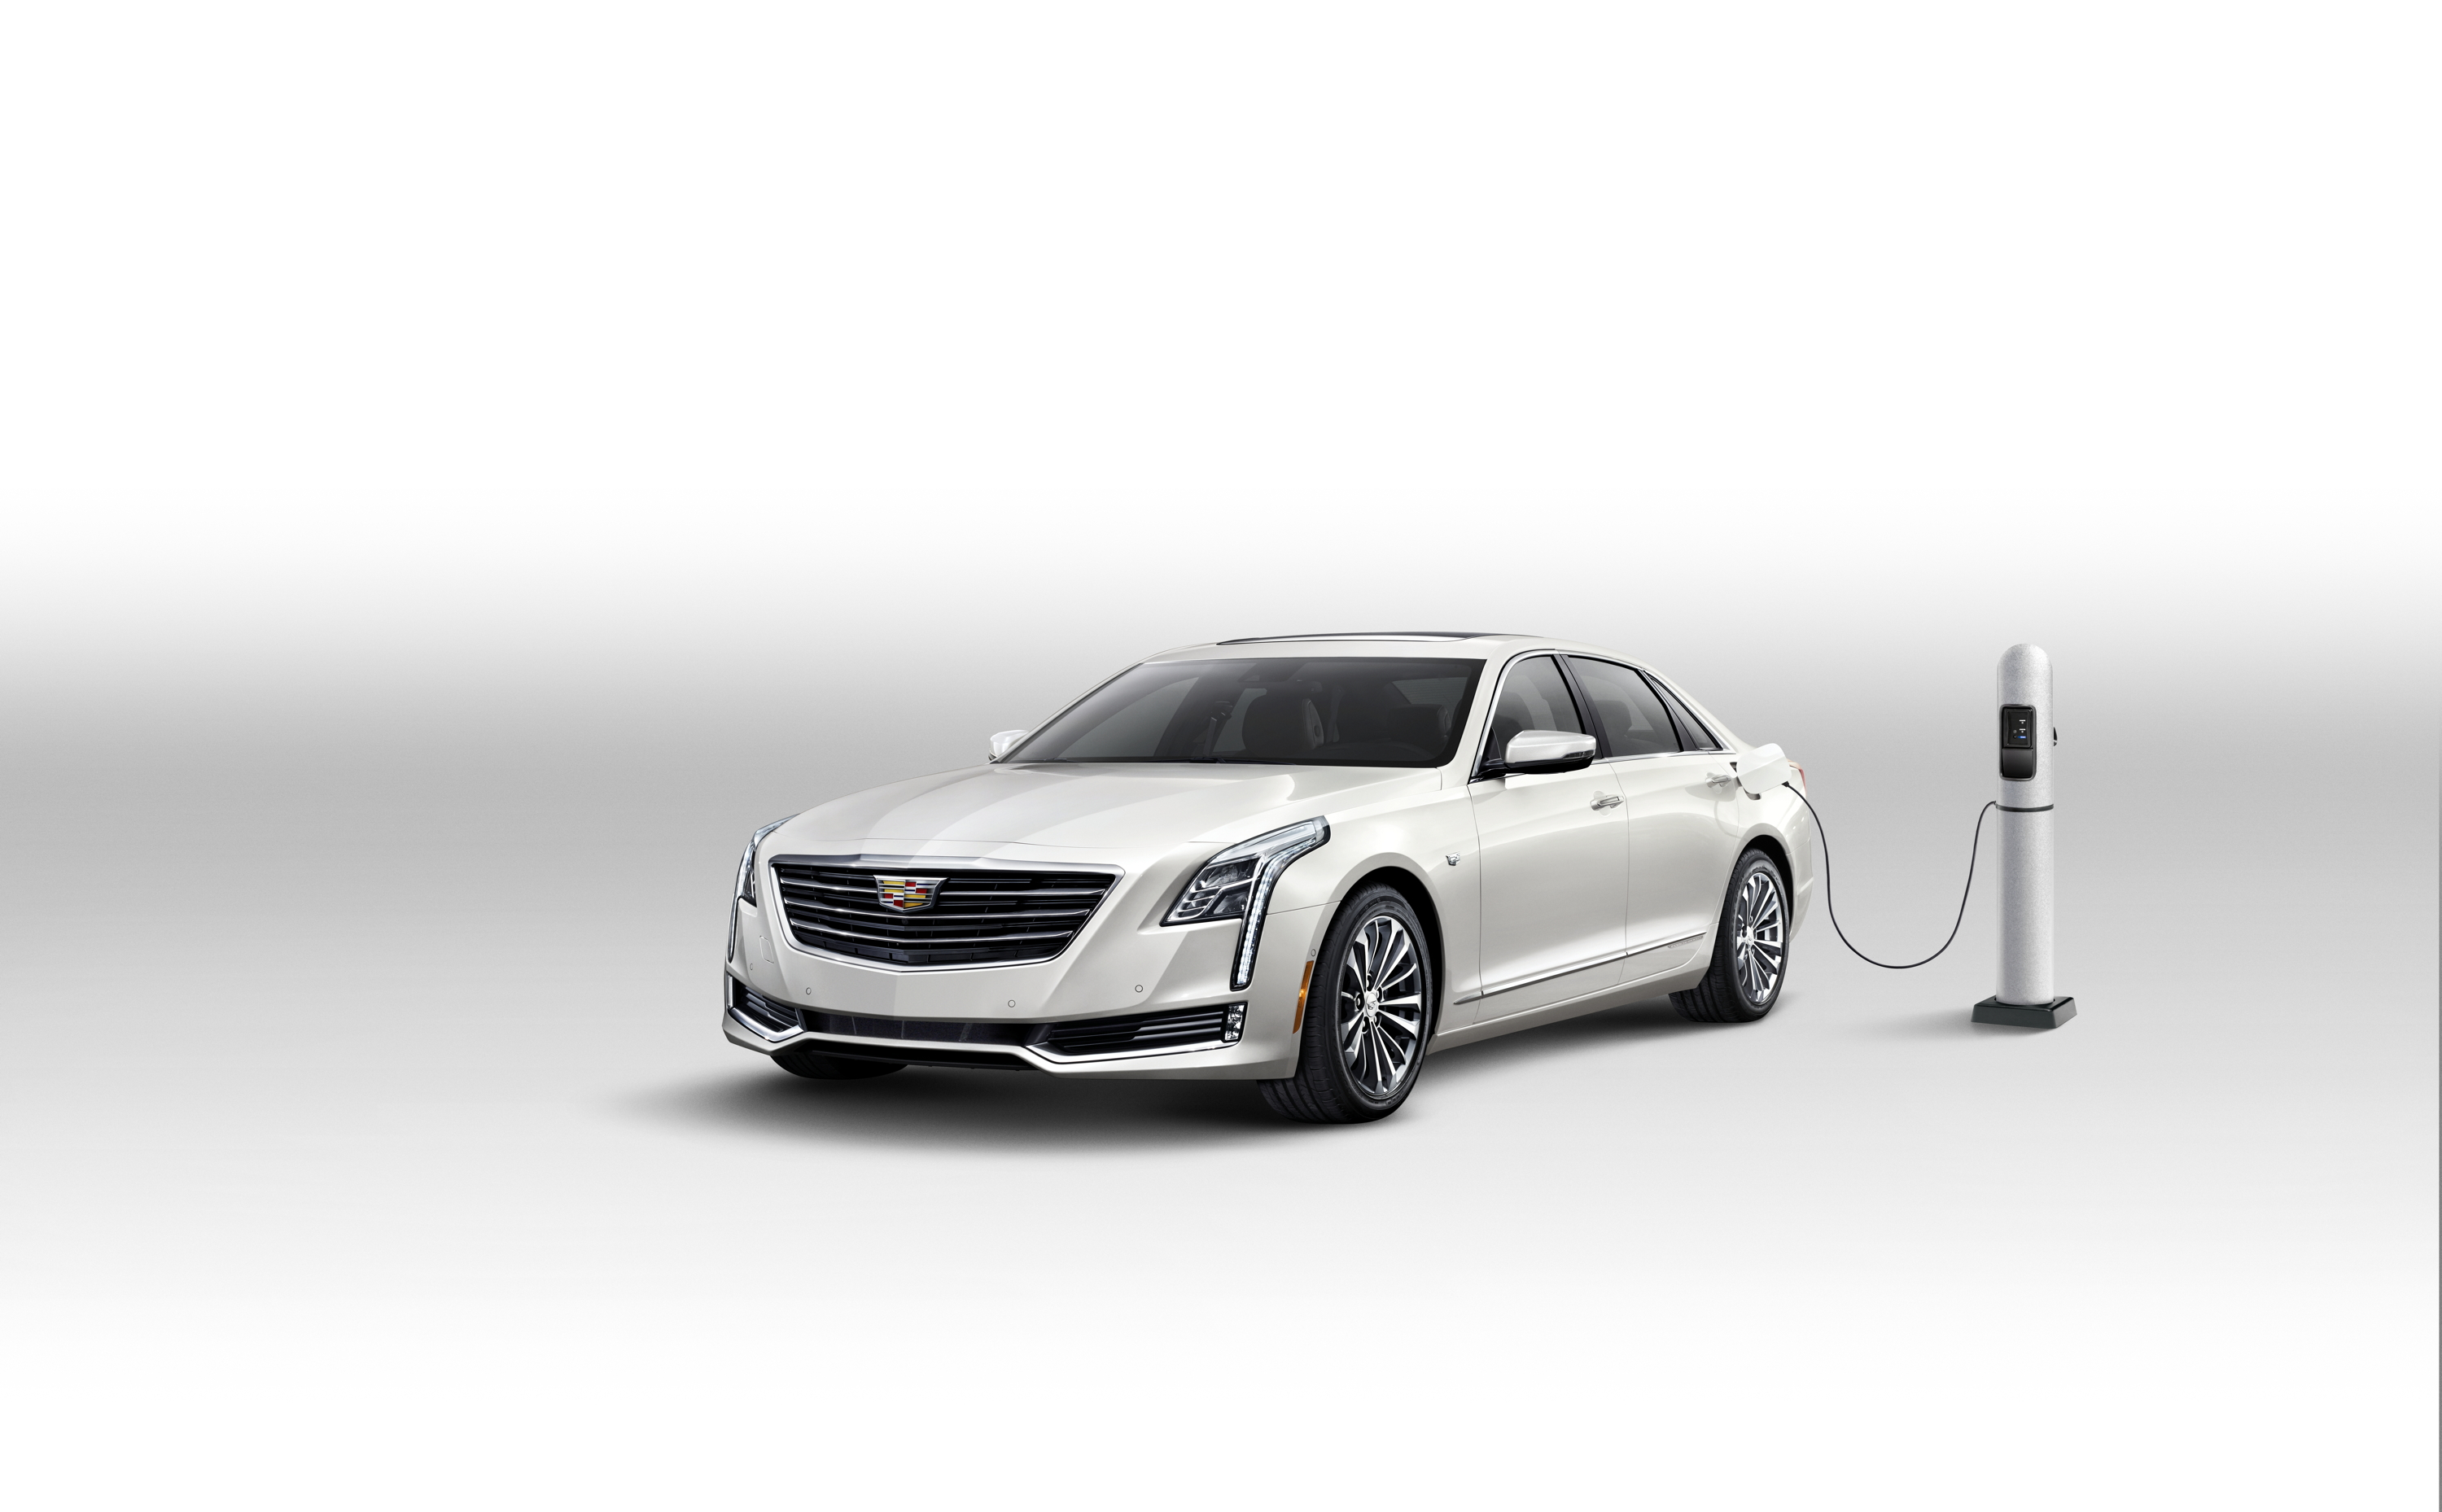 2017 cadillac ct6 plug in hybrid offers an estimated 30 miles of electric range autoevolution. Black Bedroom Furniture Sets. Home Design Ideas